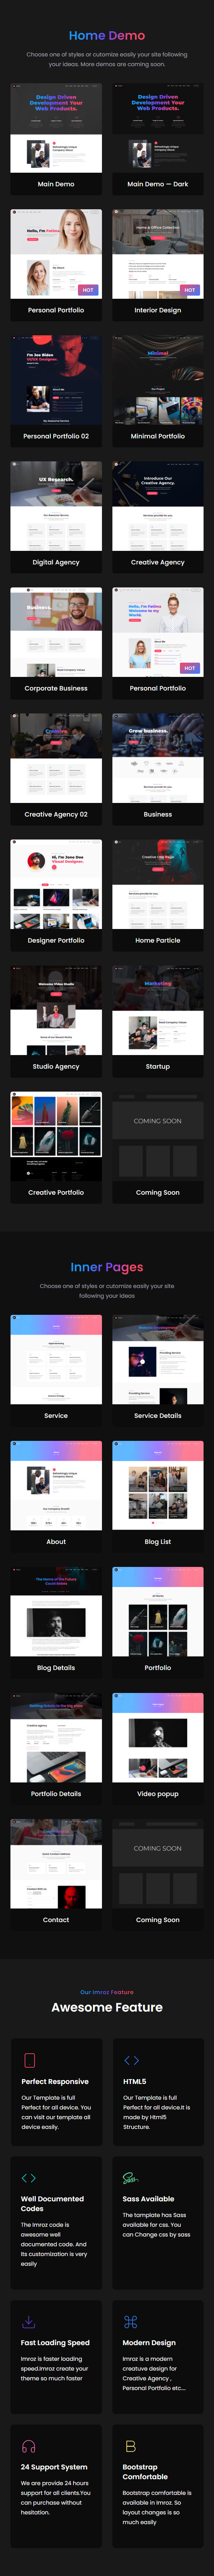 Imroz - Creative Agency and Portfolio Bootstrap Template - 7